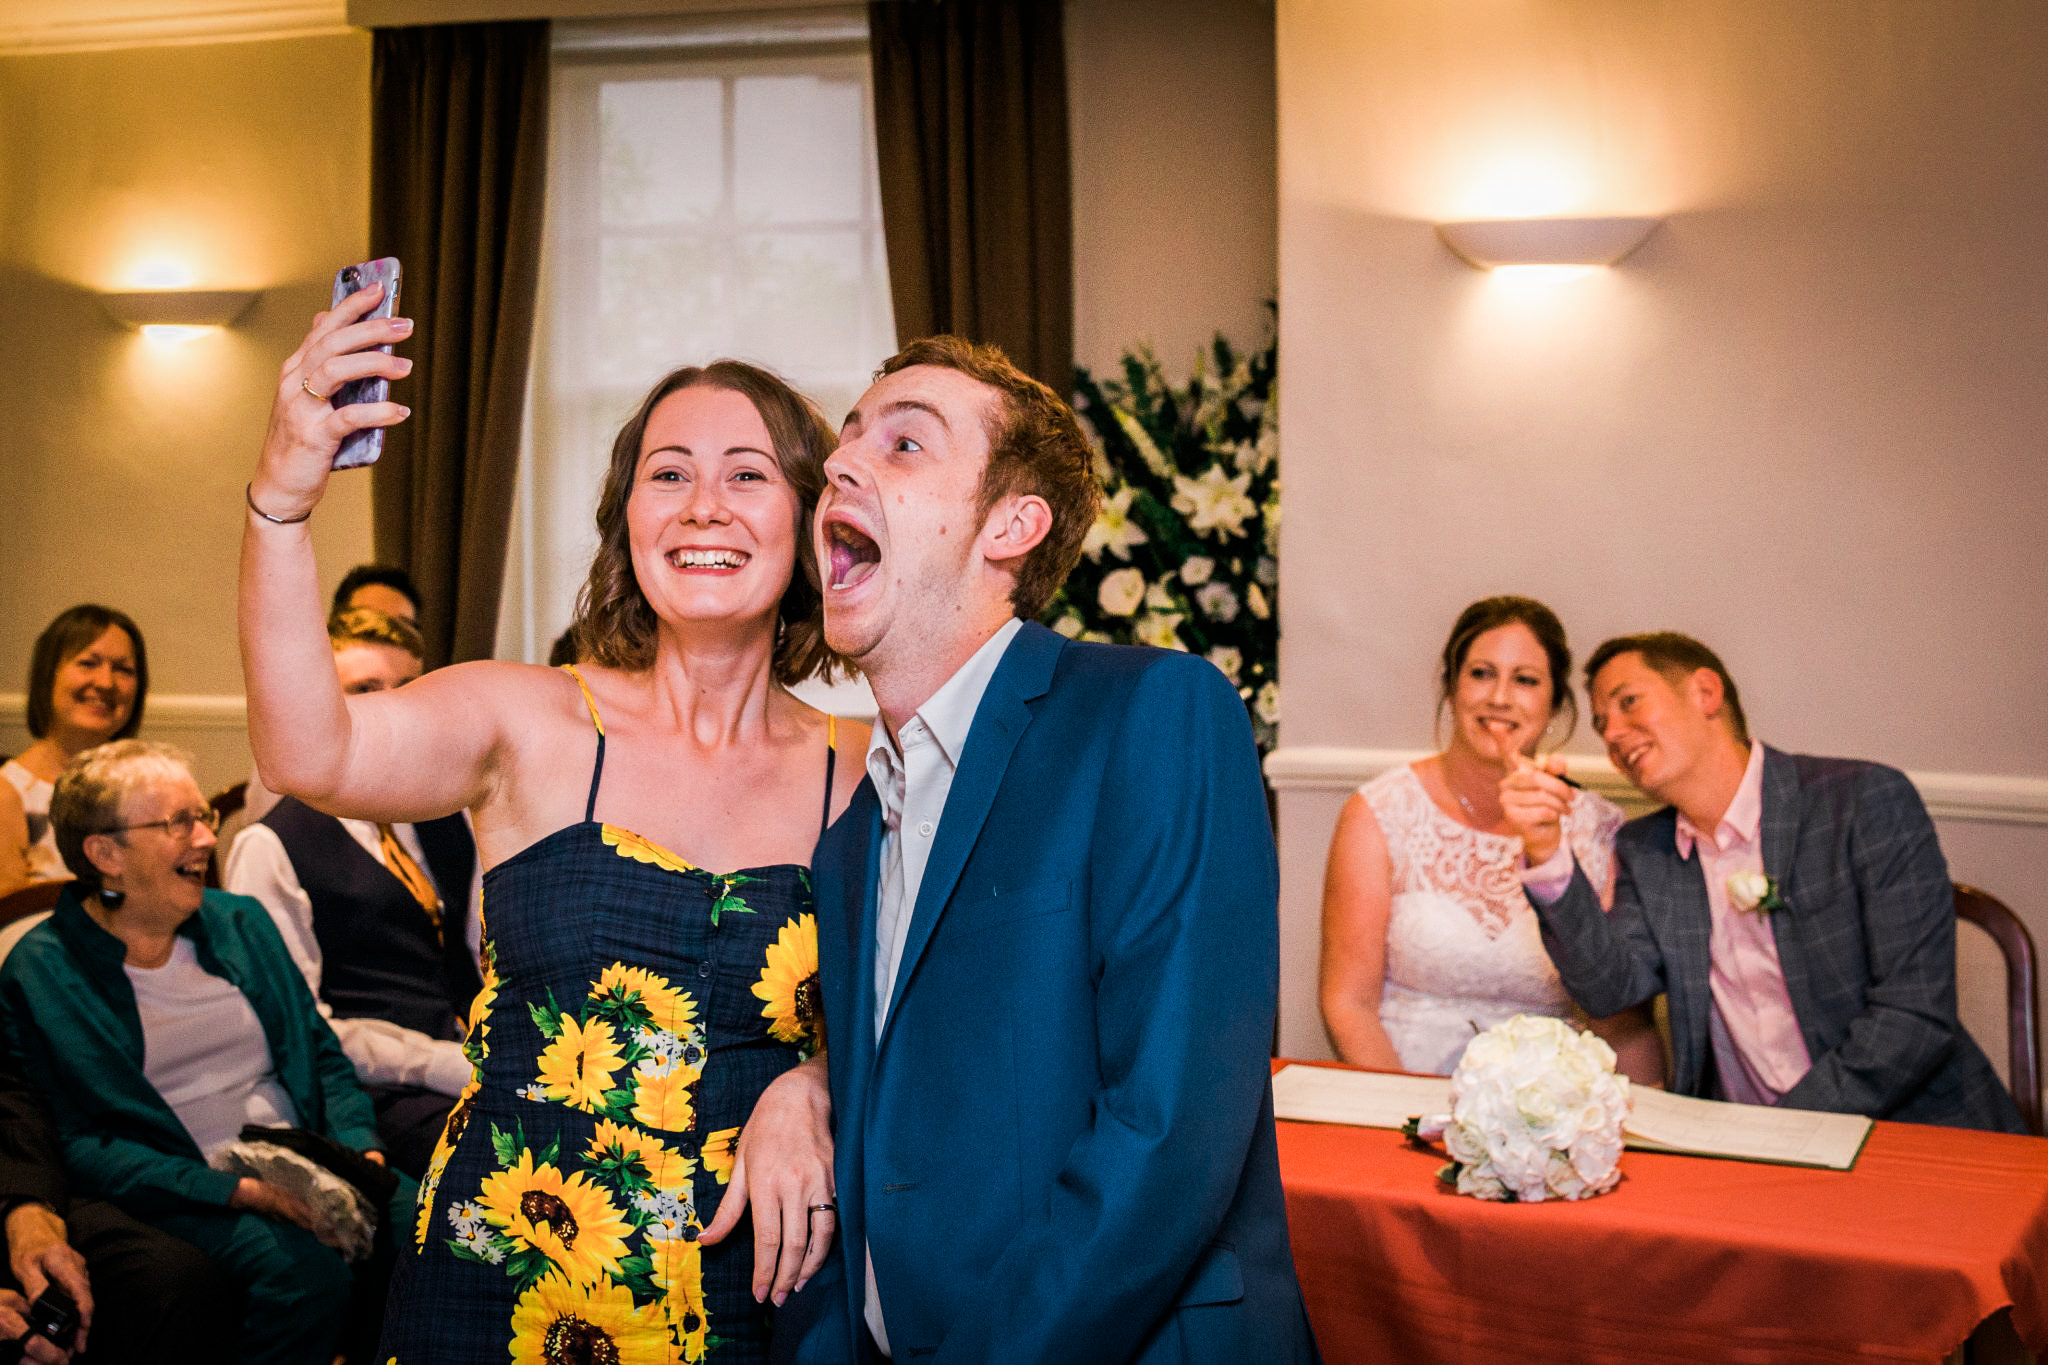 guests photobombing bride and groom during ceremony